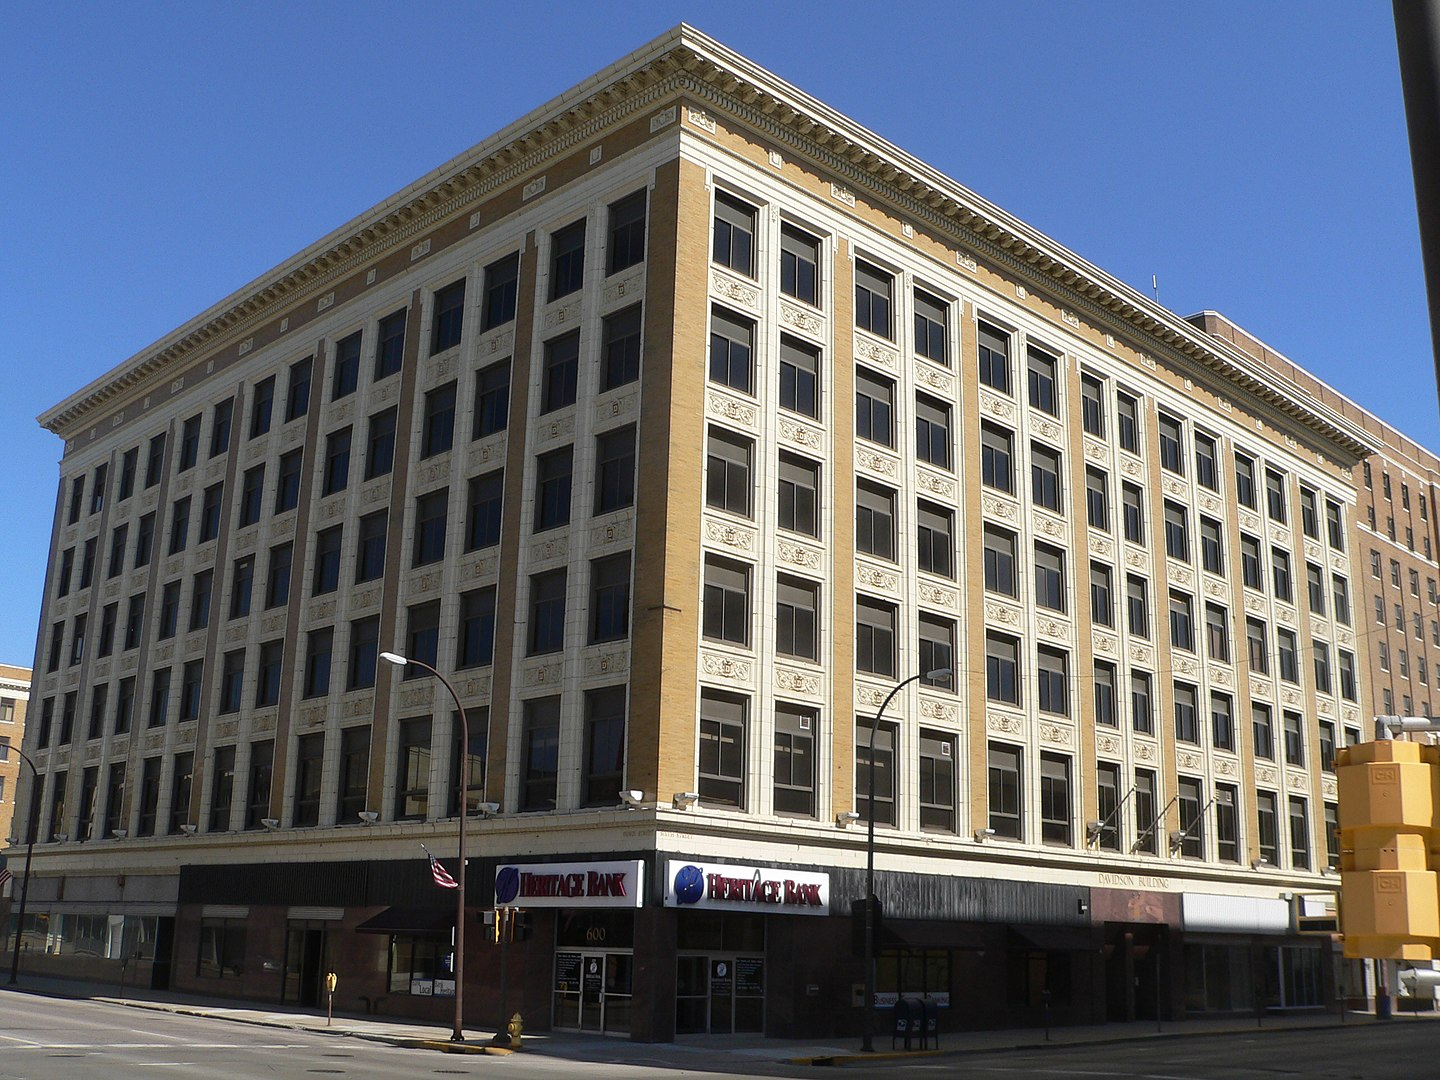 2012 Photo of the Davidson Building